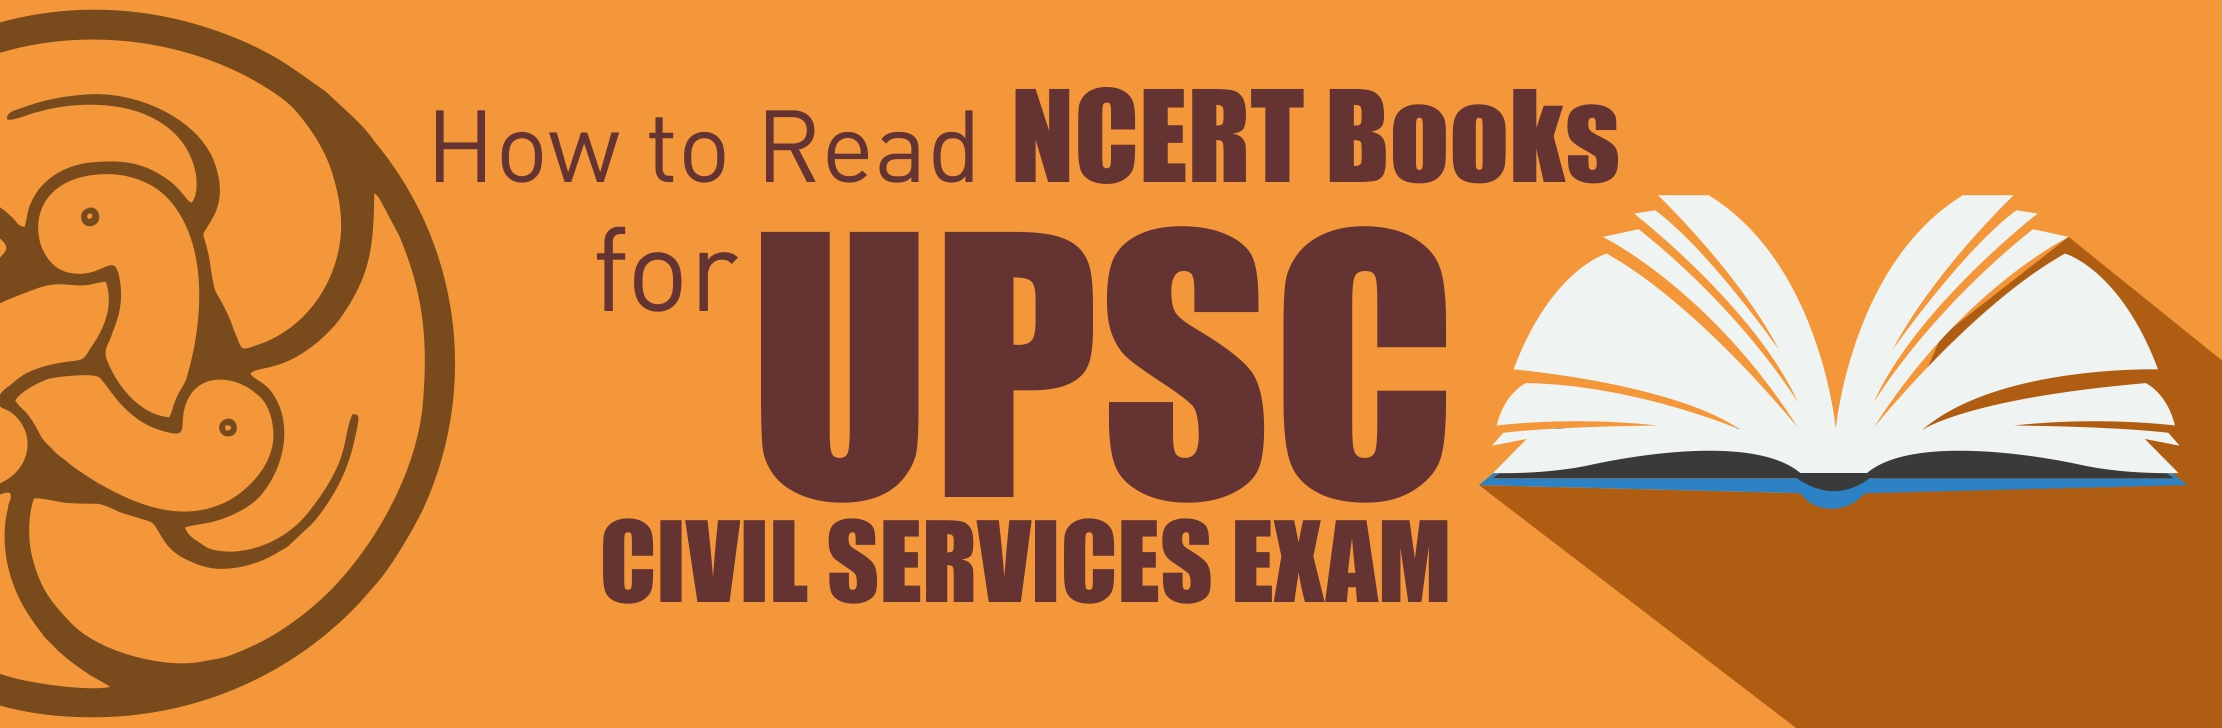 How to Read NCERT Books for UPSC Civil Services Exam